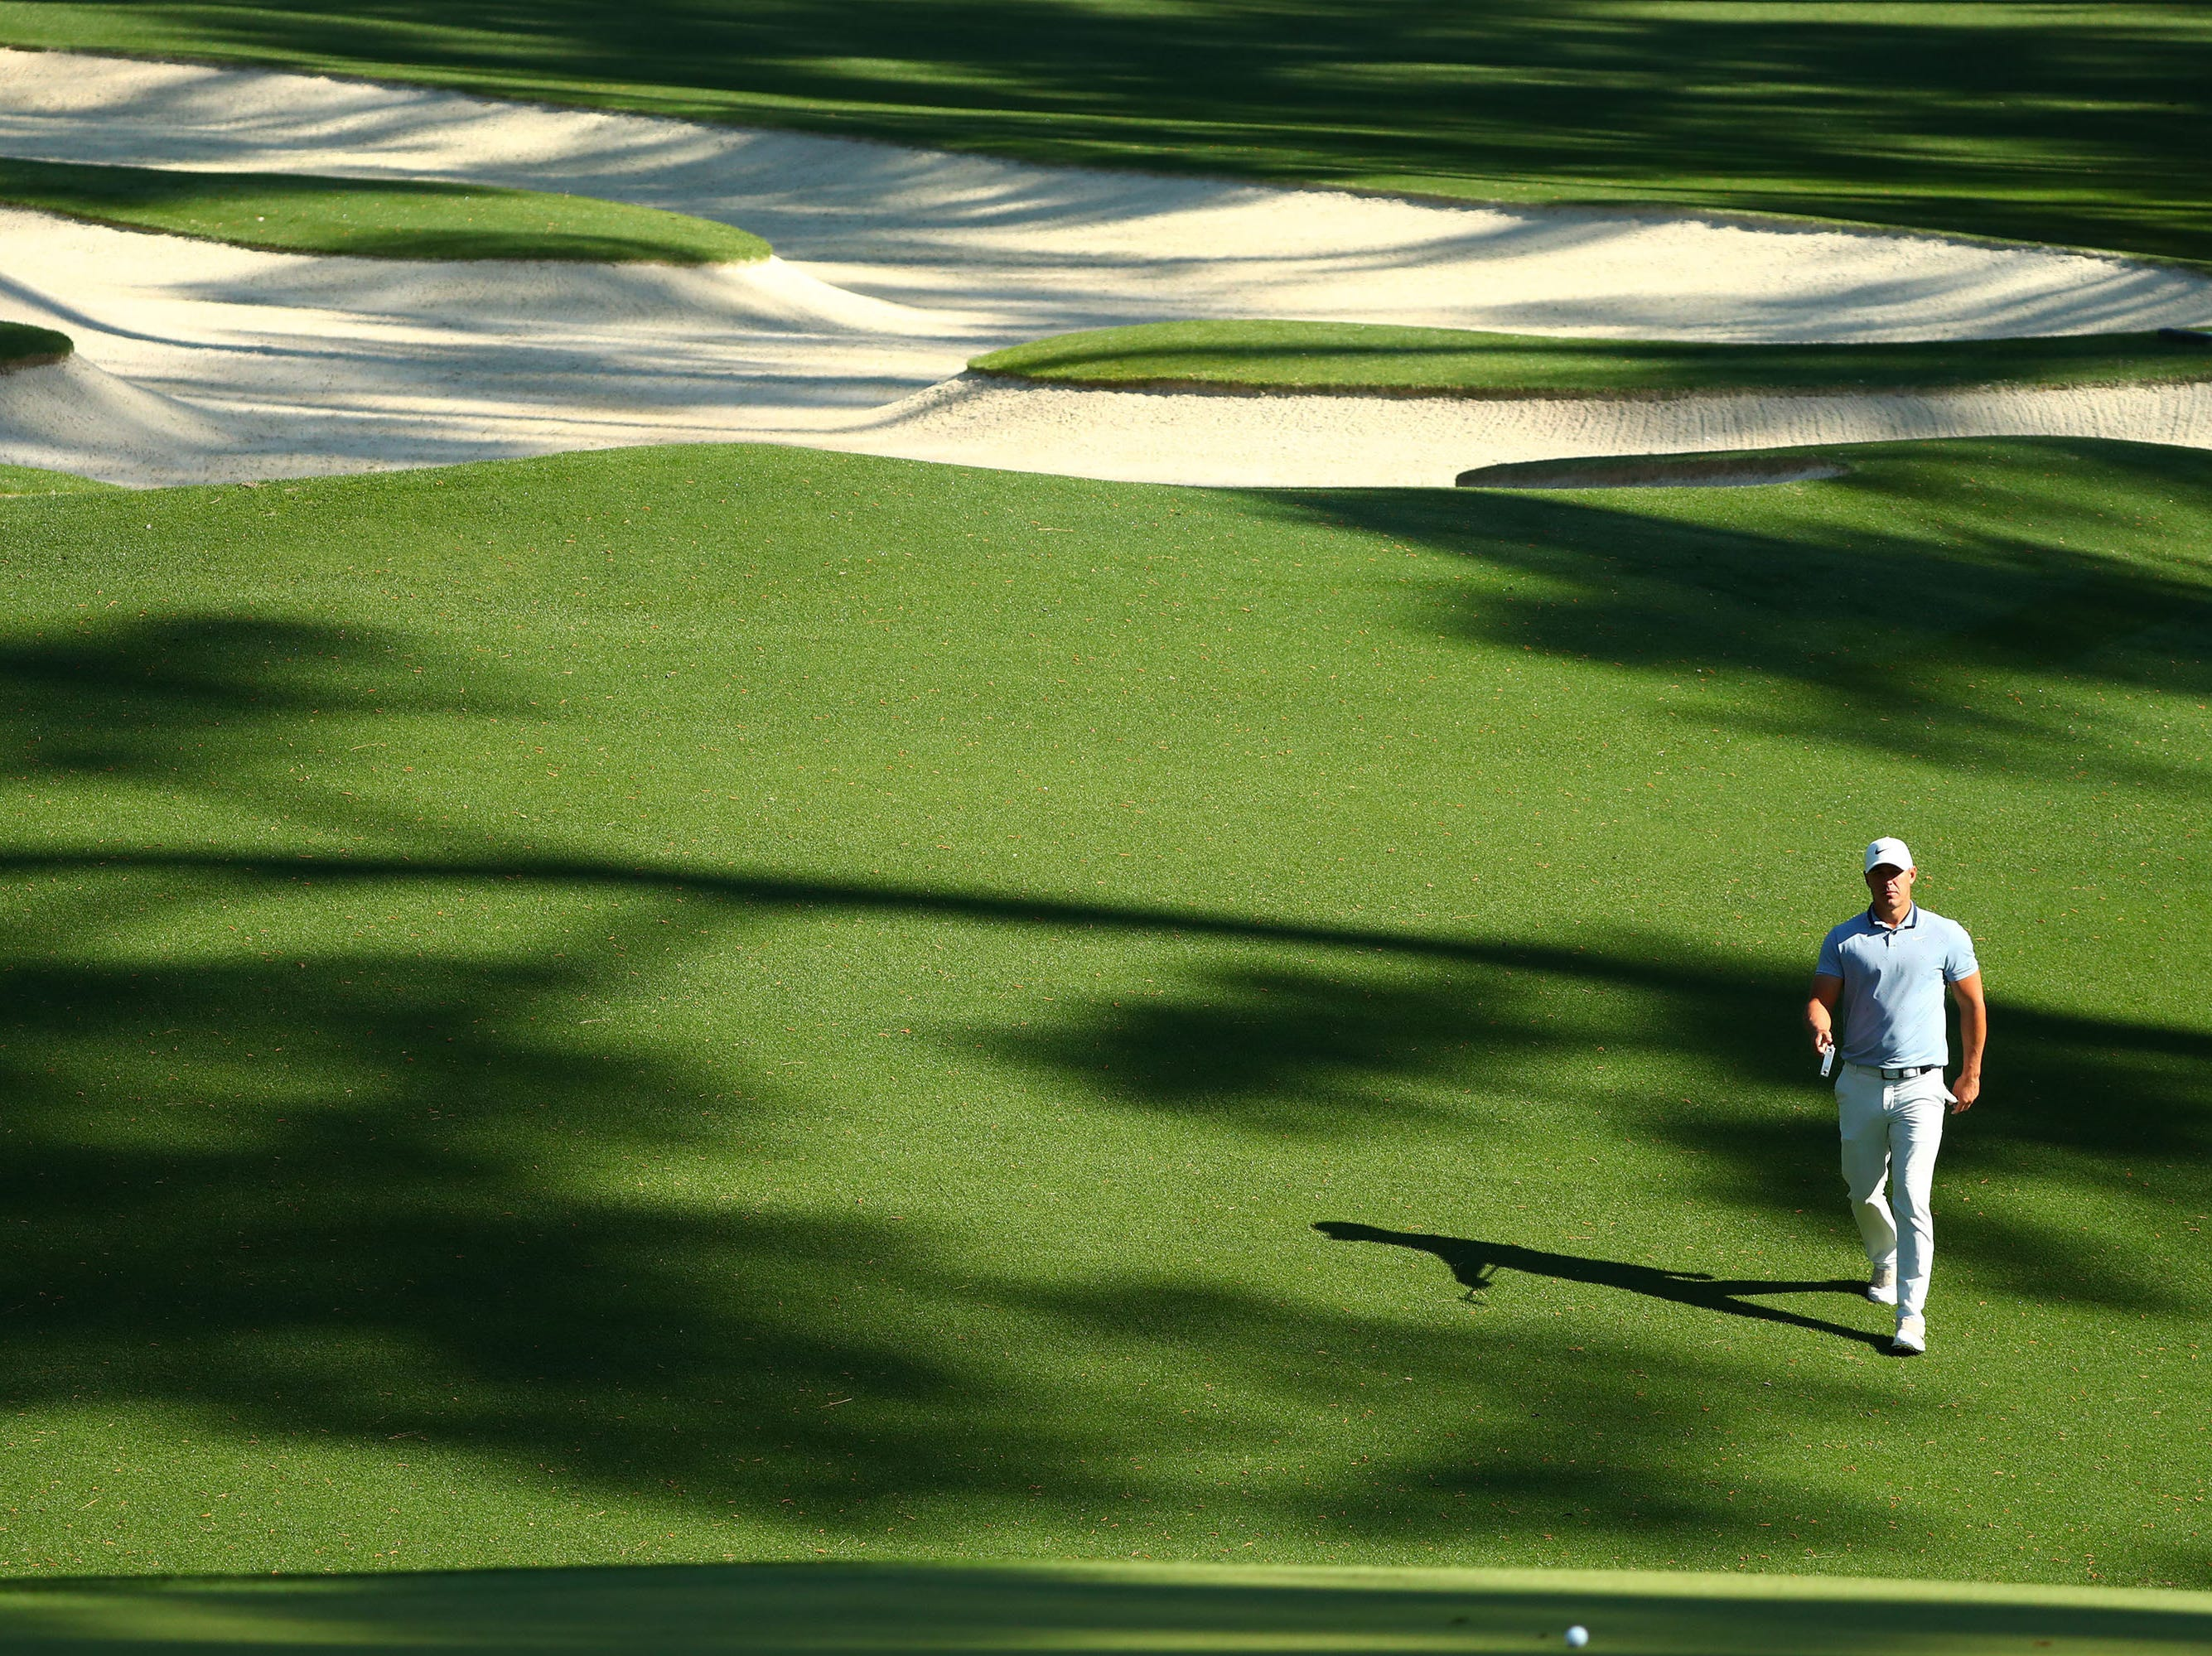 Apr 10, 2019; Augusta, GA, USA; Brooks Koepka walks to the 10th green during a practice round for The Masters golf tournament at Augusta National Golf Club. Mandatory Credit: Rob Schumacher-USA TODAY Sports